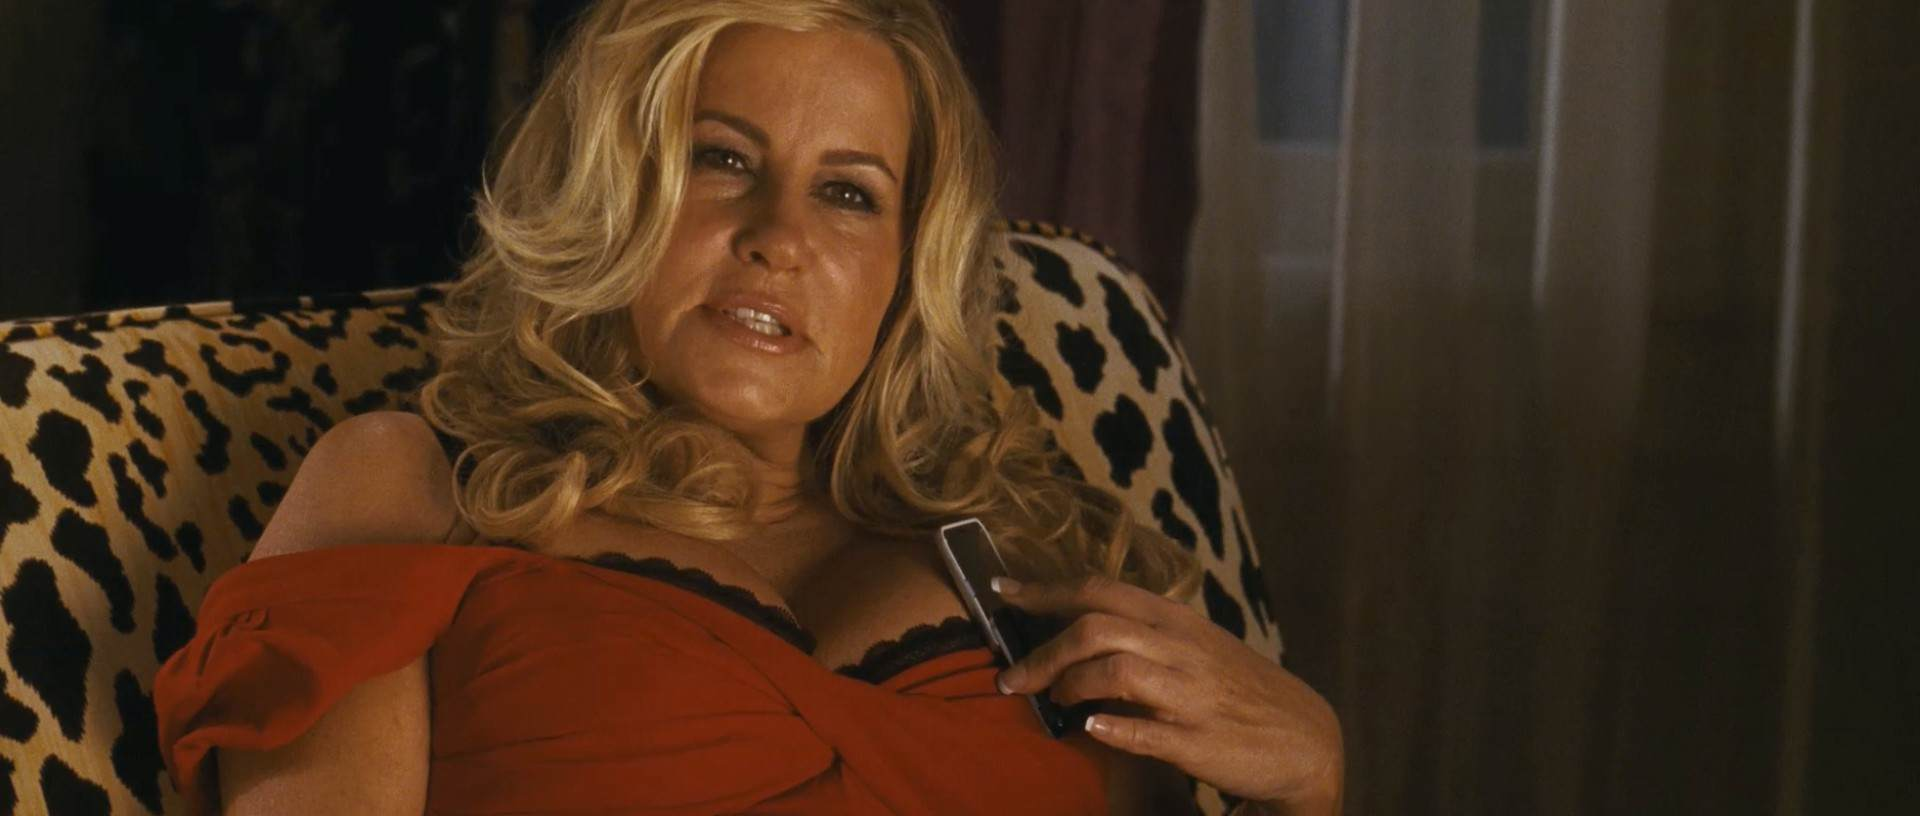 jennifer coolidge as stifler s mom in american We Spoke To A 20 Year Old Guy Whos Dating A Woman Twice His Age